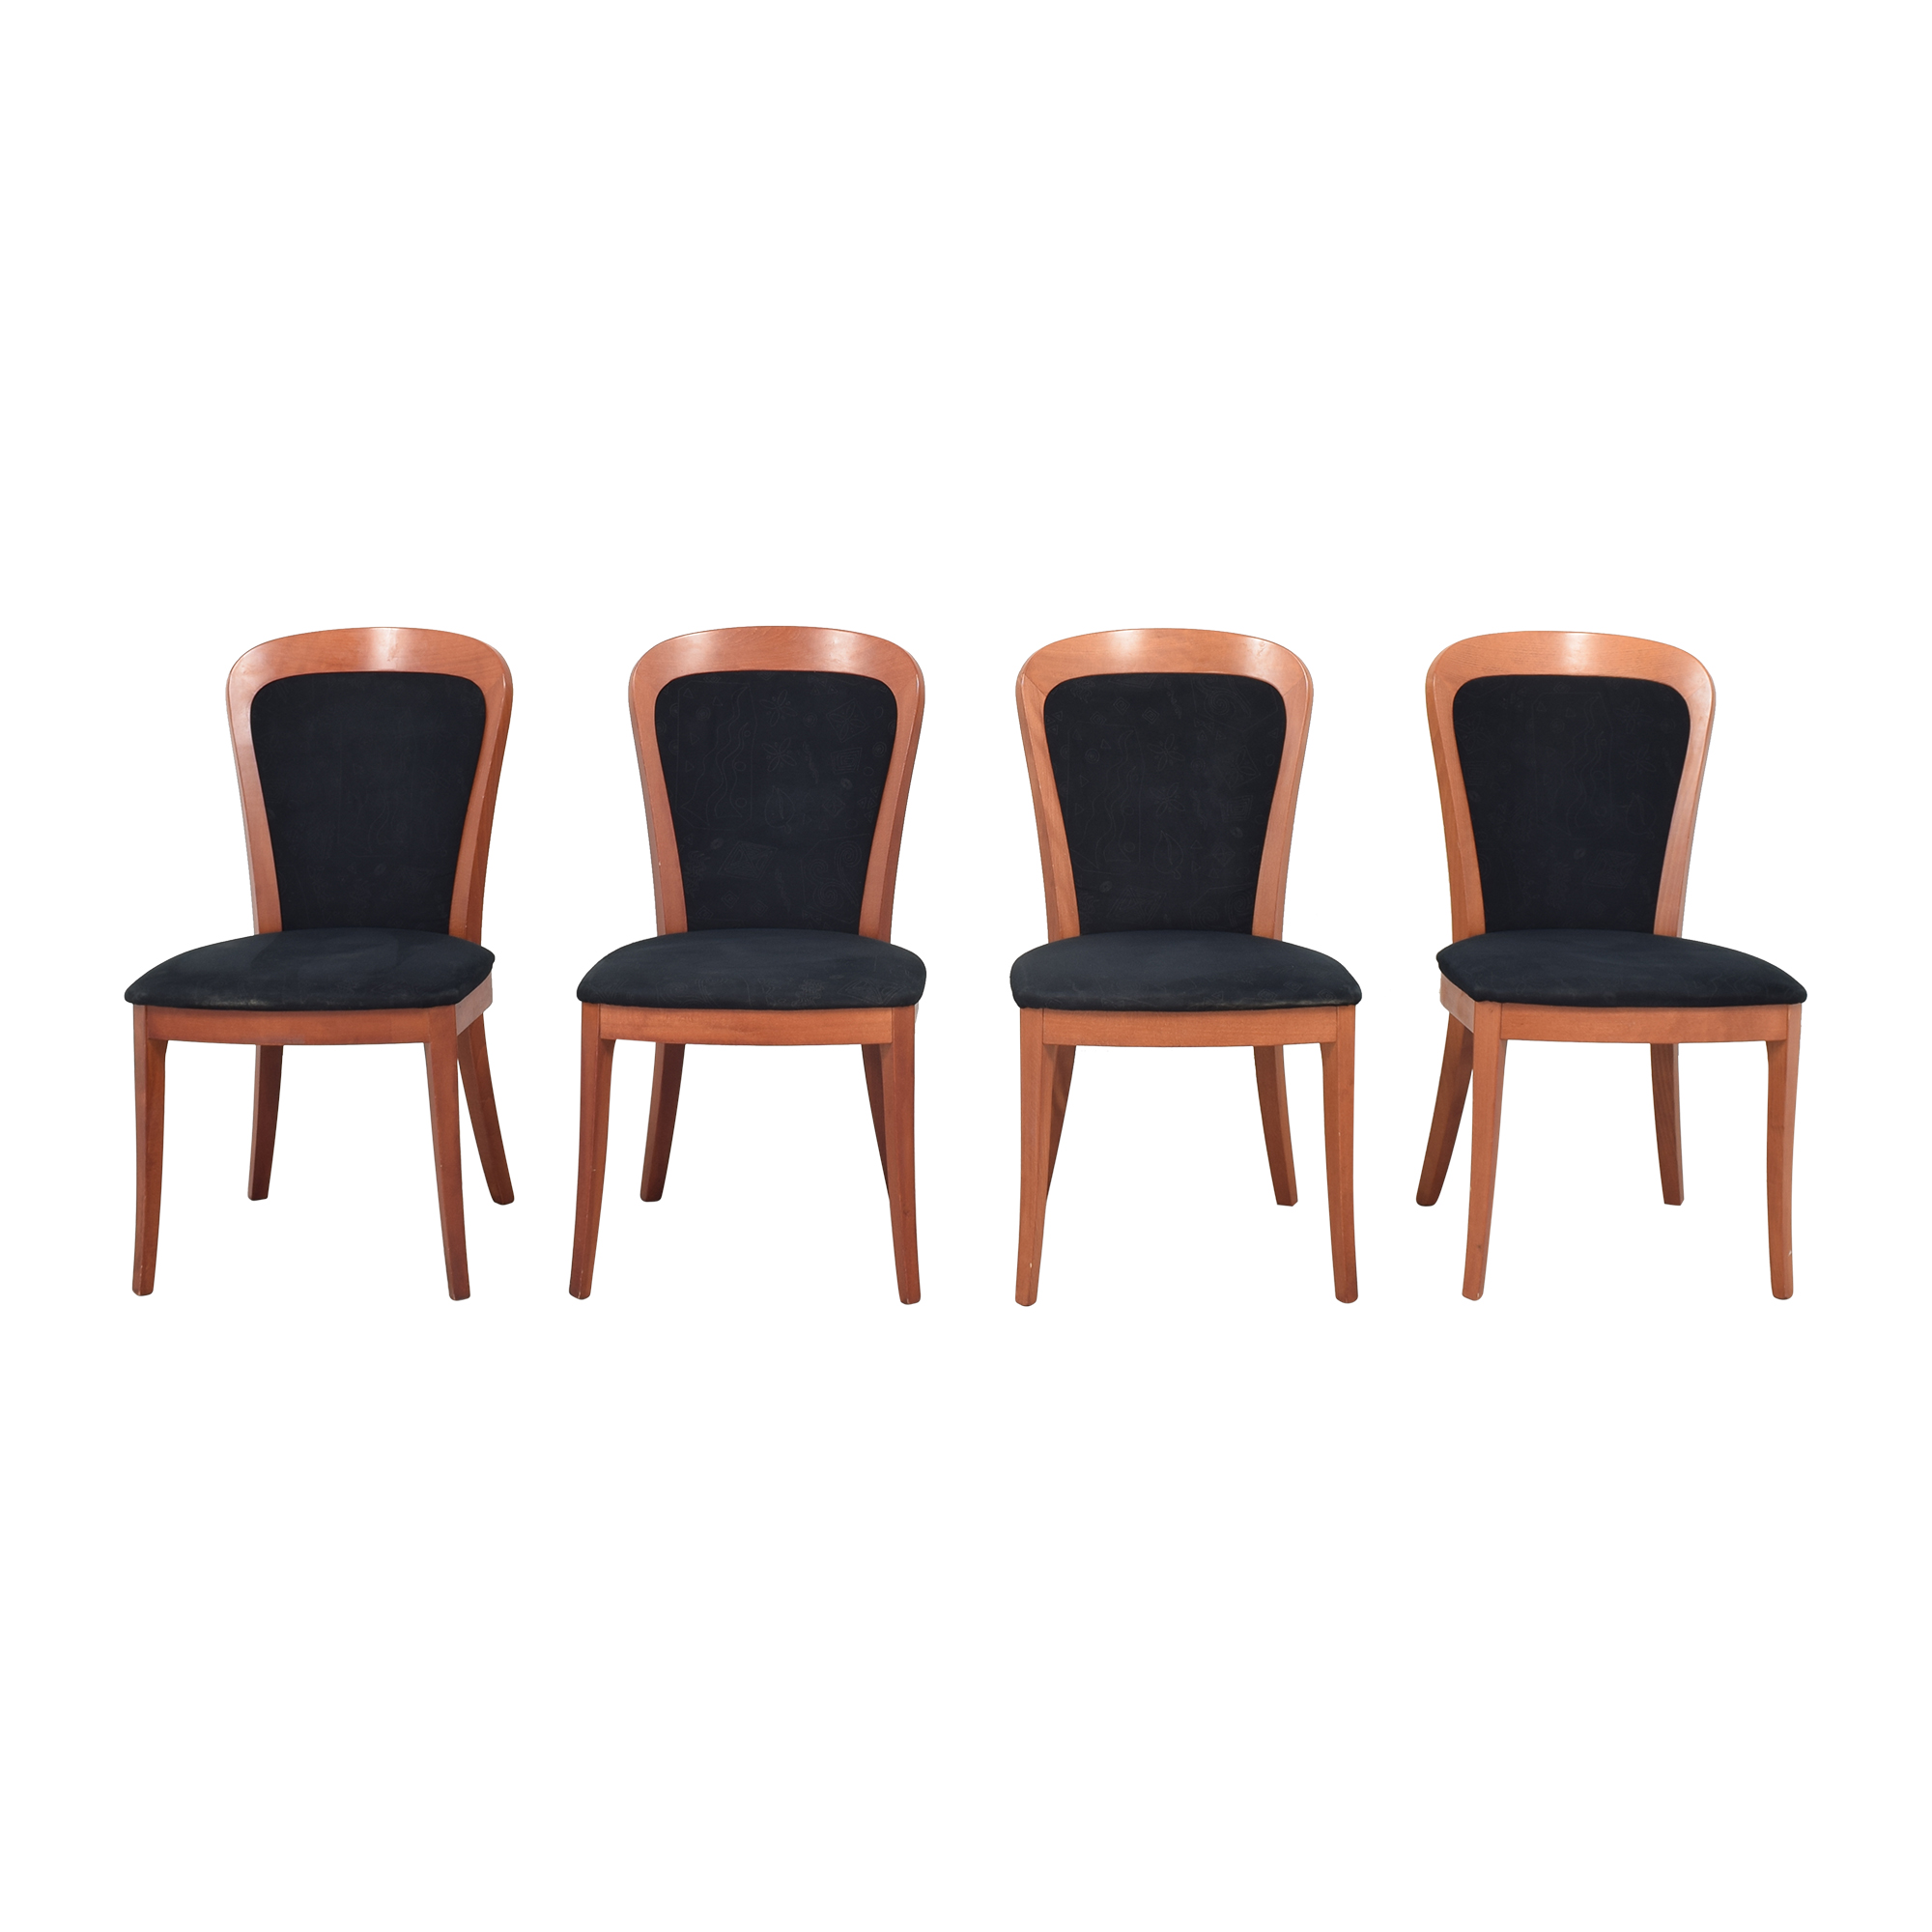 SA A. Sibau SA A. Sibau Dining Chairs brown & black